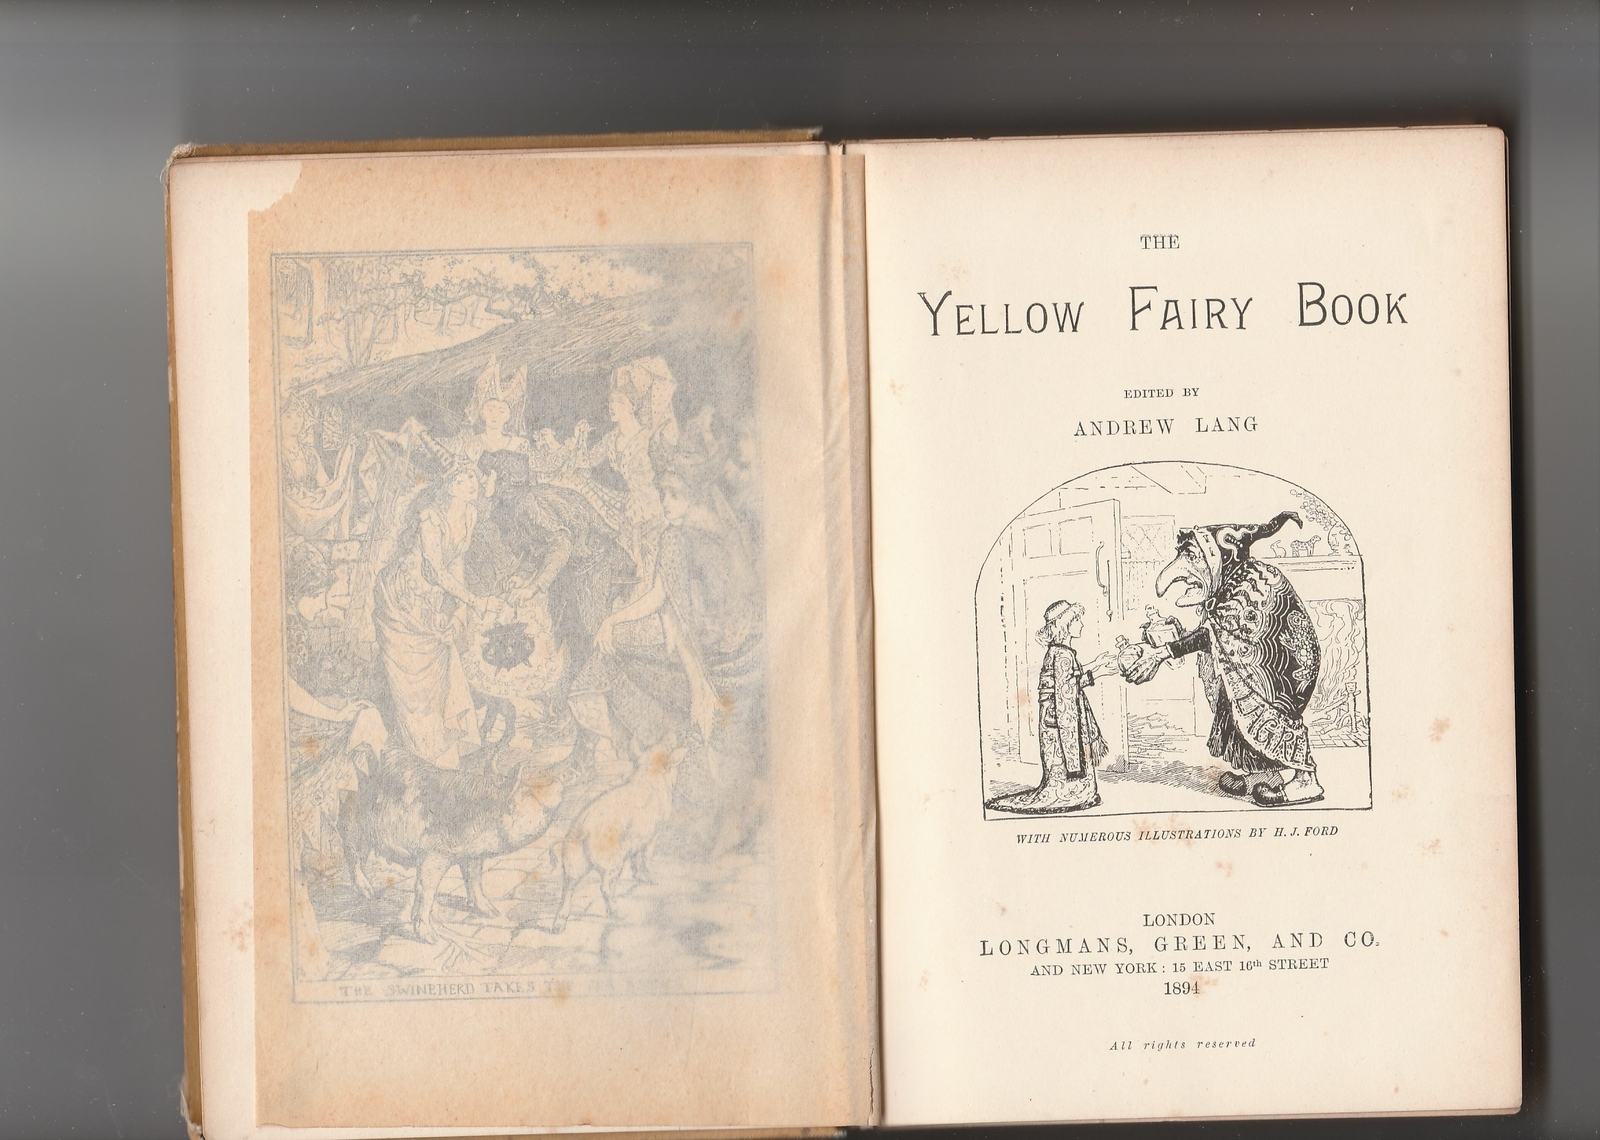 The Yellow Fairy Book by Andrew Lang 1894 1st illustrated